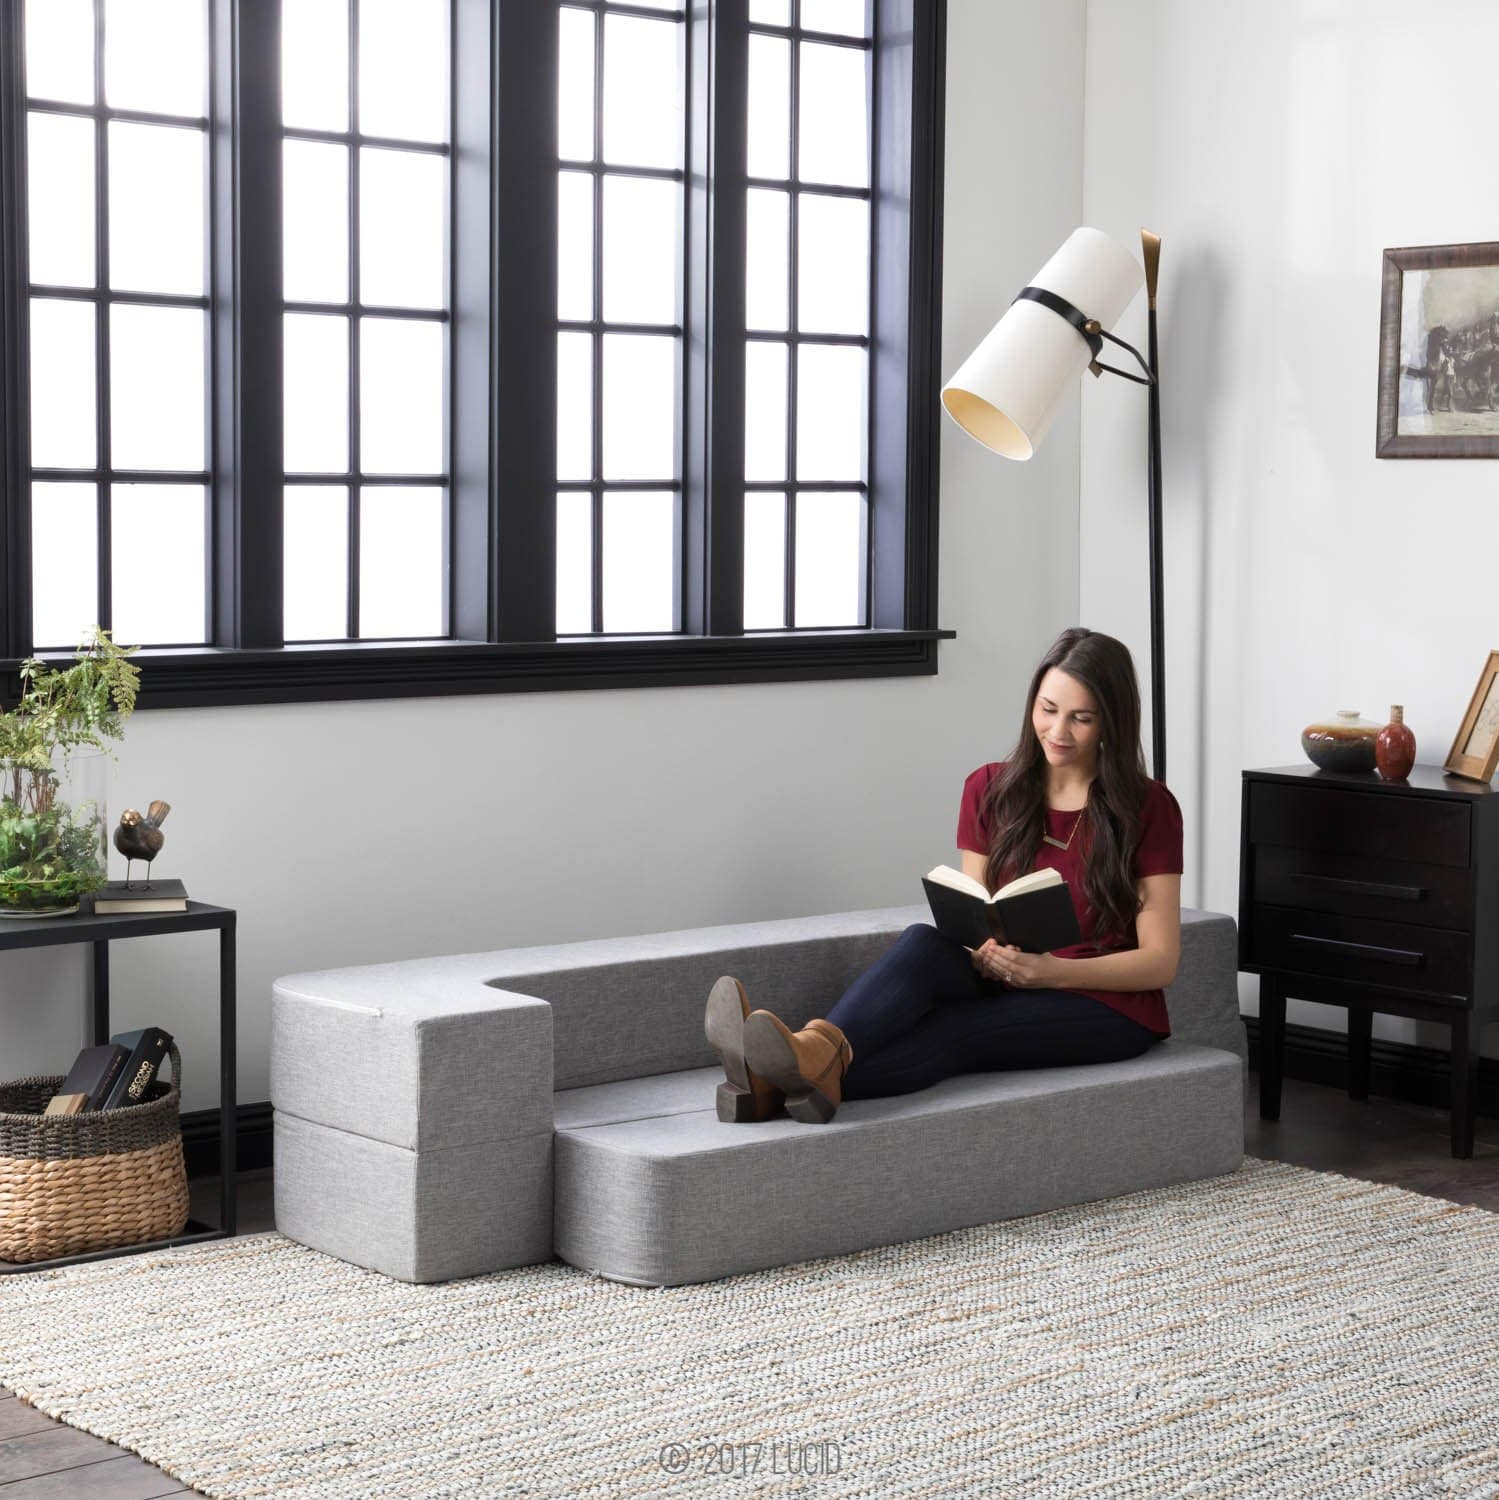 LUCID 8 Inch Convertible Foam Sofa and Foldable Play Mat